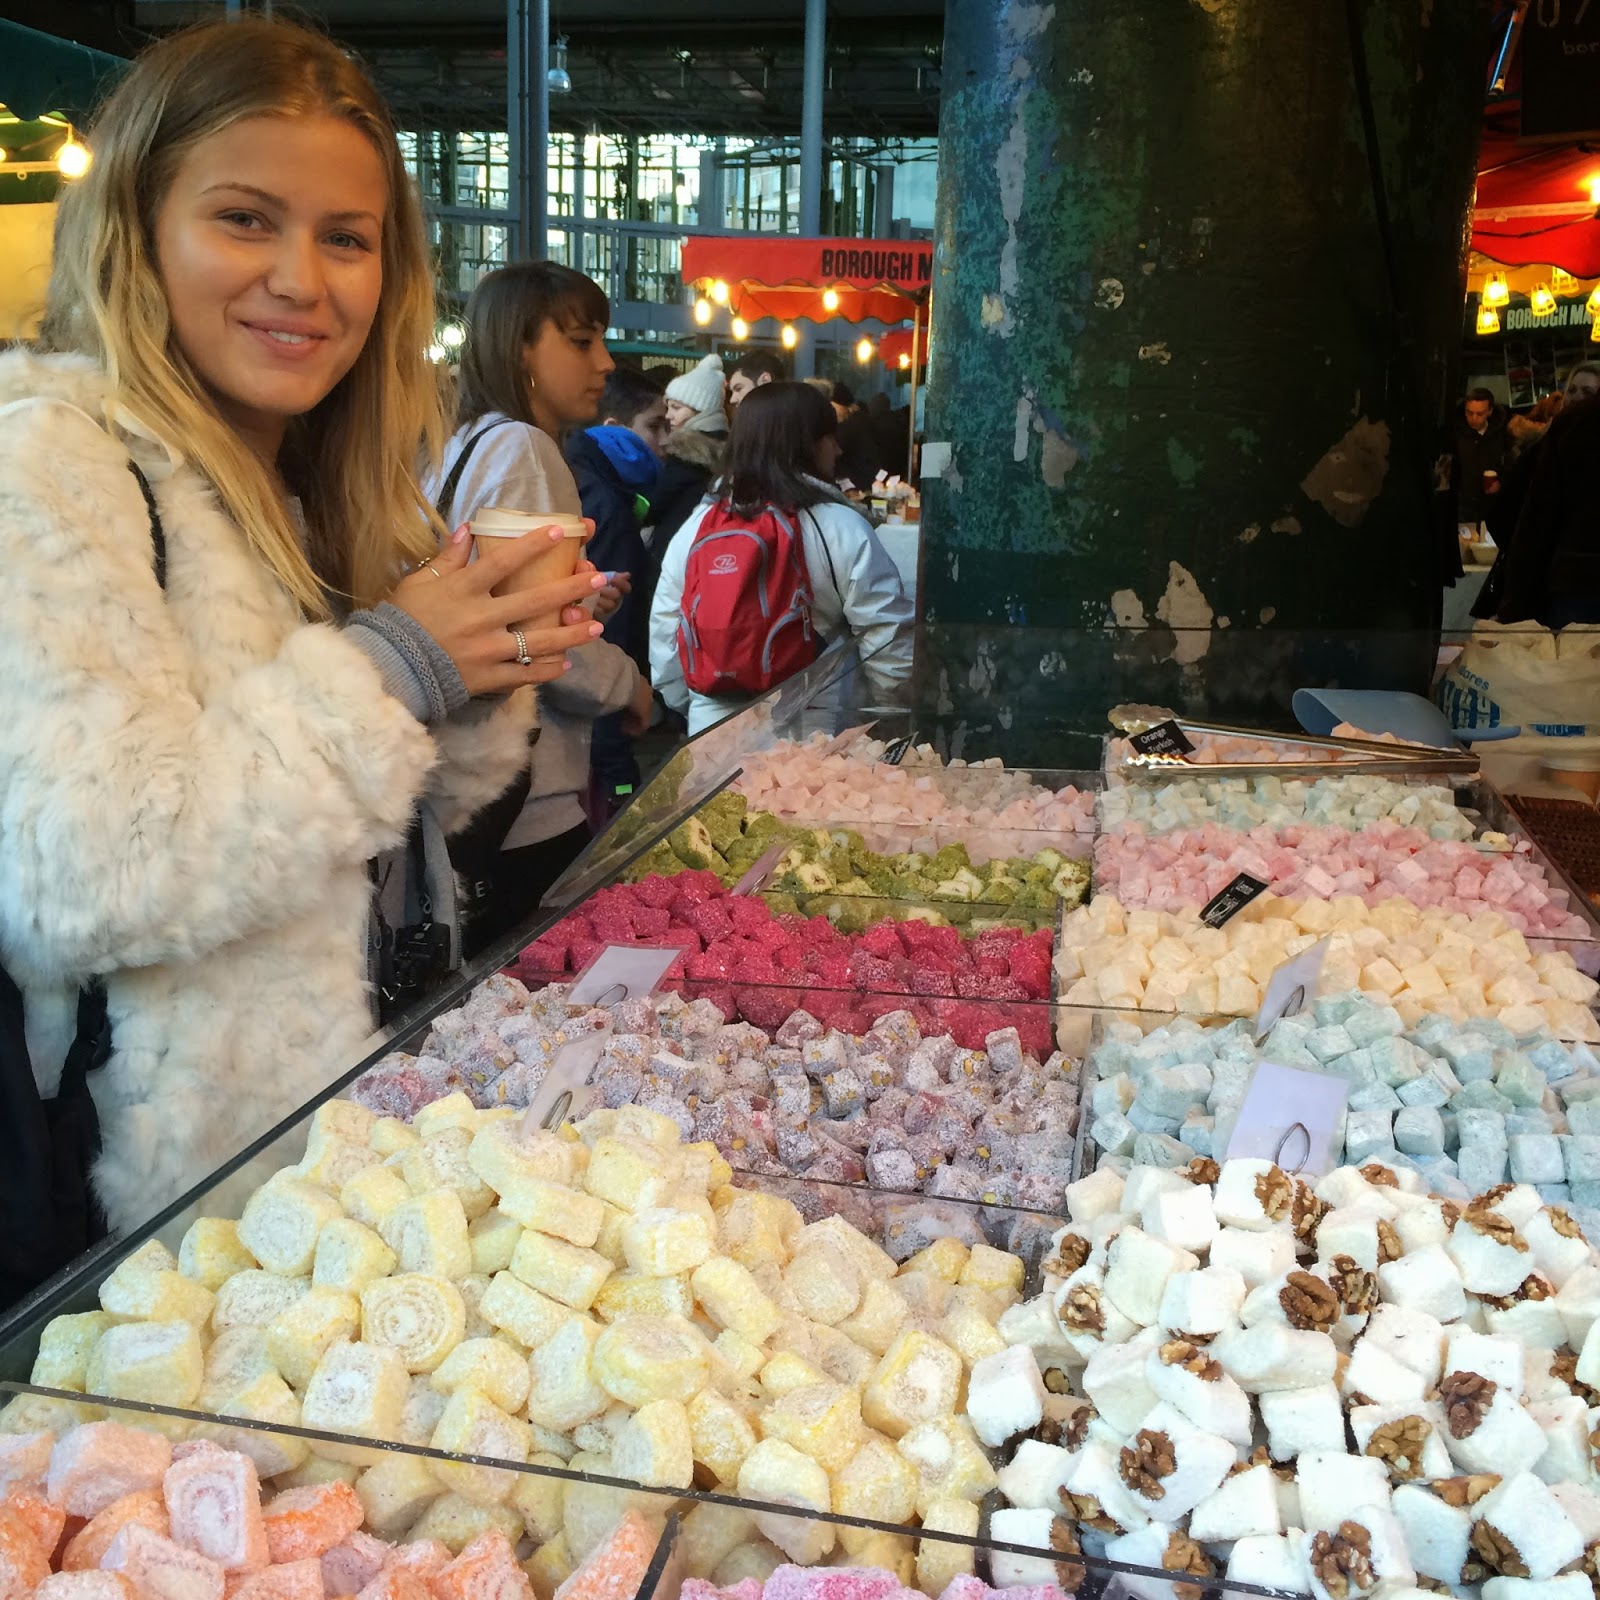 Borough Market + WokIt Noodles - Being a tourist in my own city...